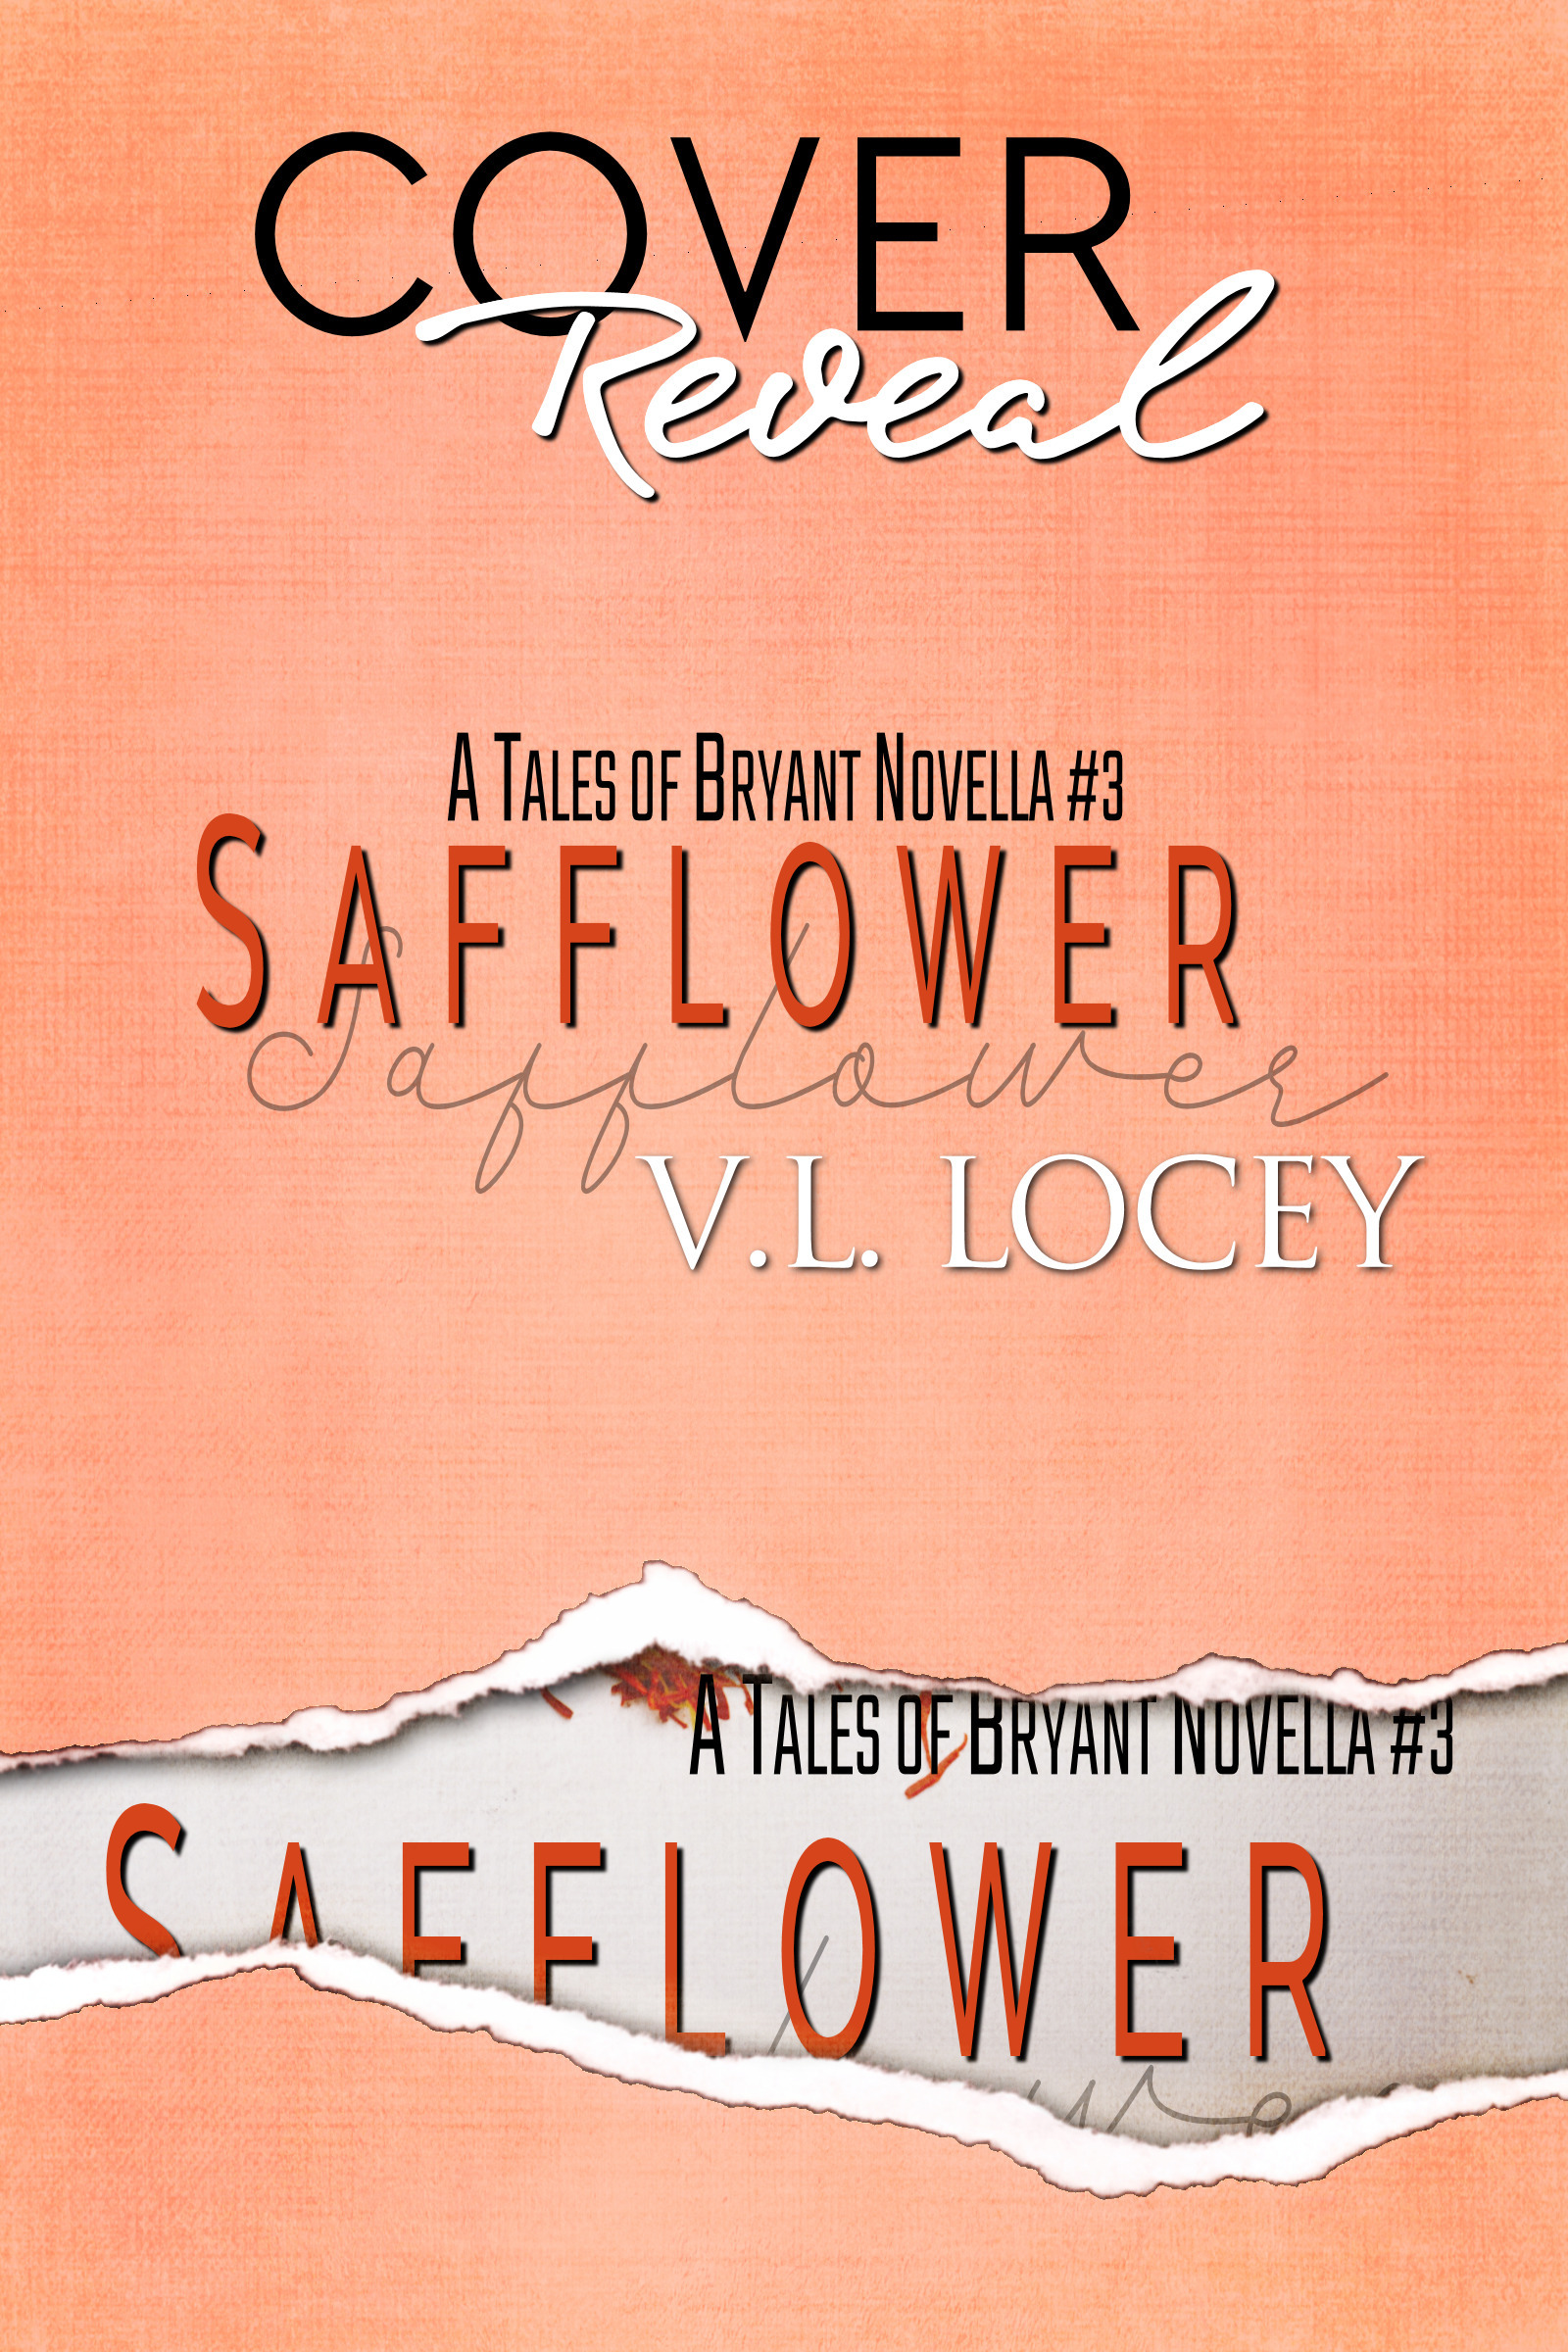 Safflower (Tales of Bryant, #5)